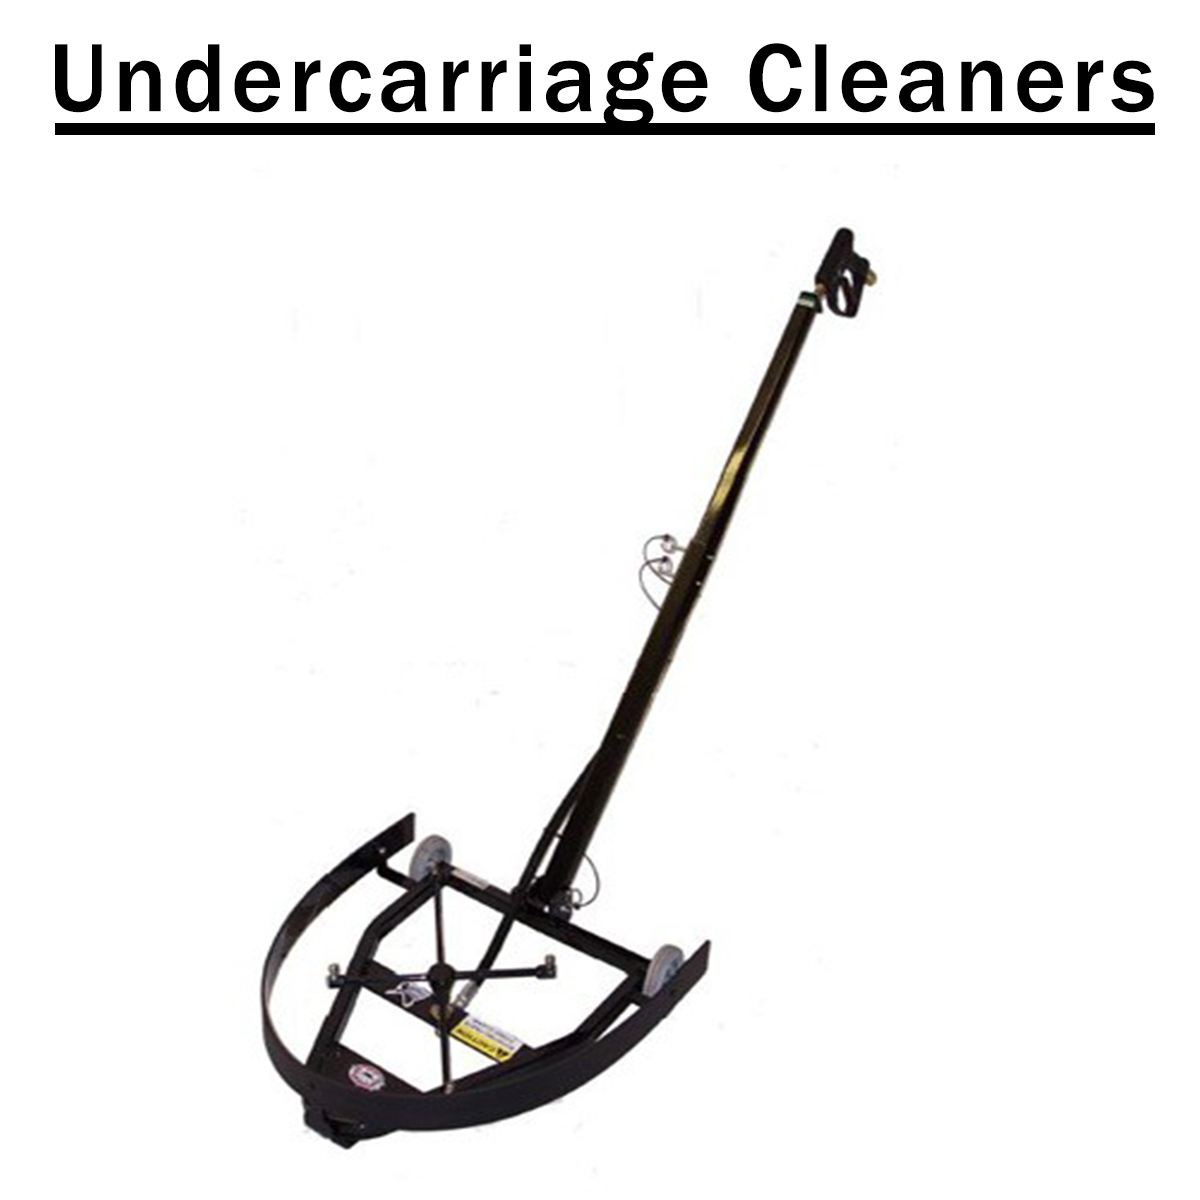 Undercarriage Cleaners